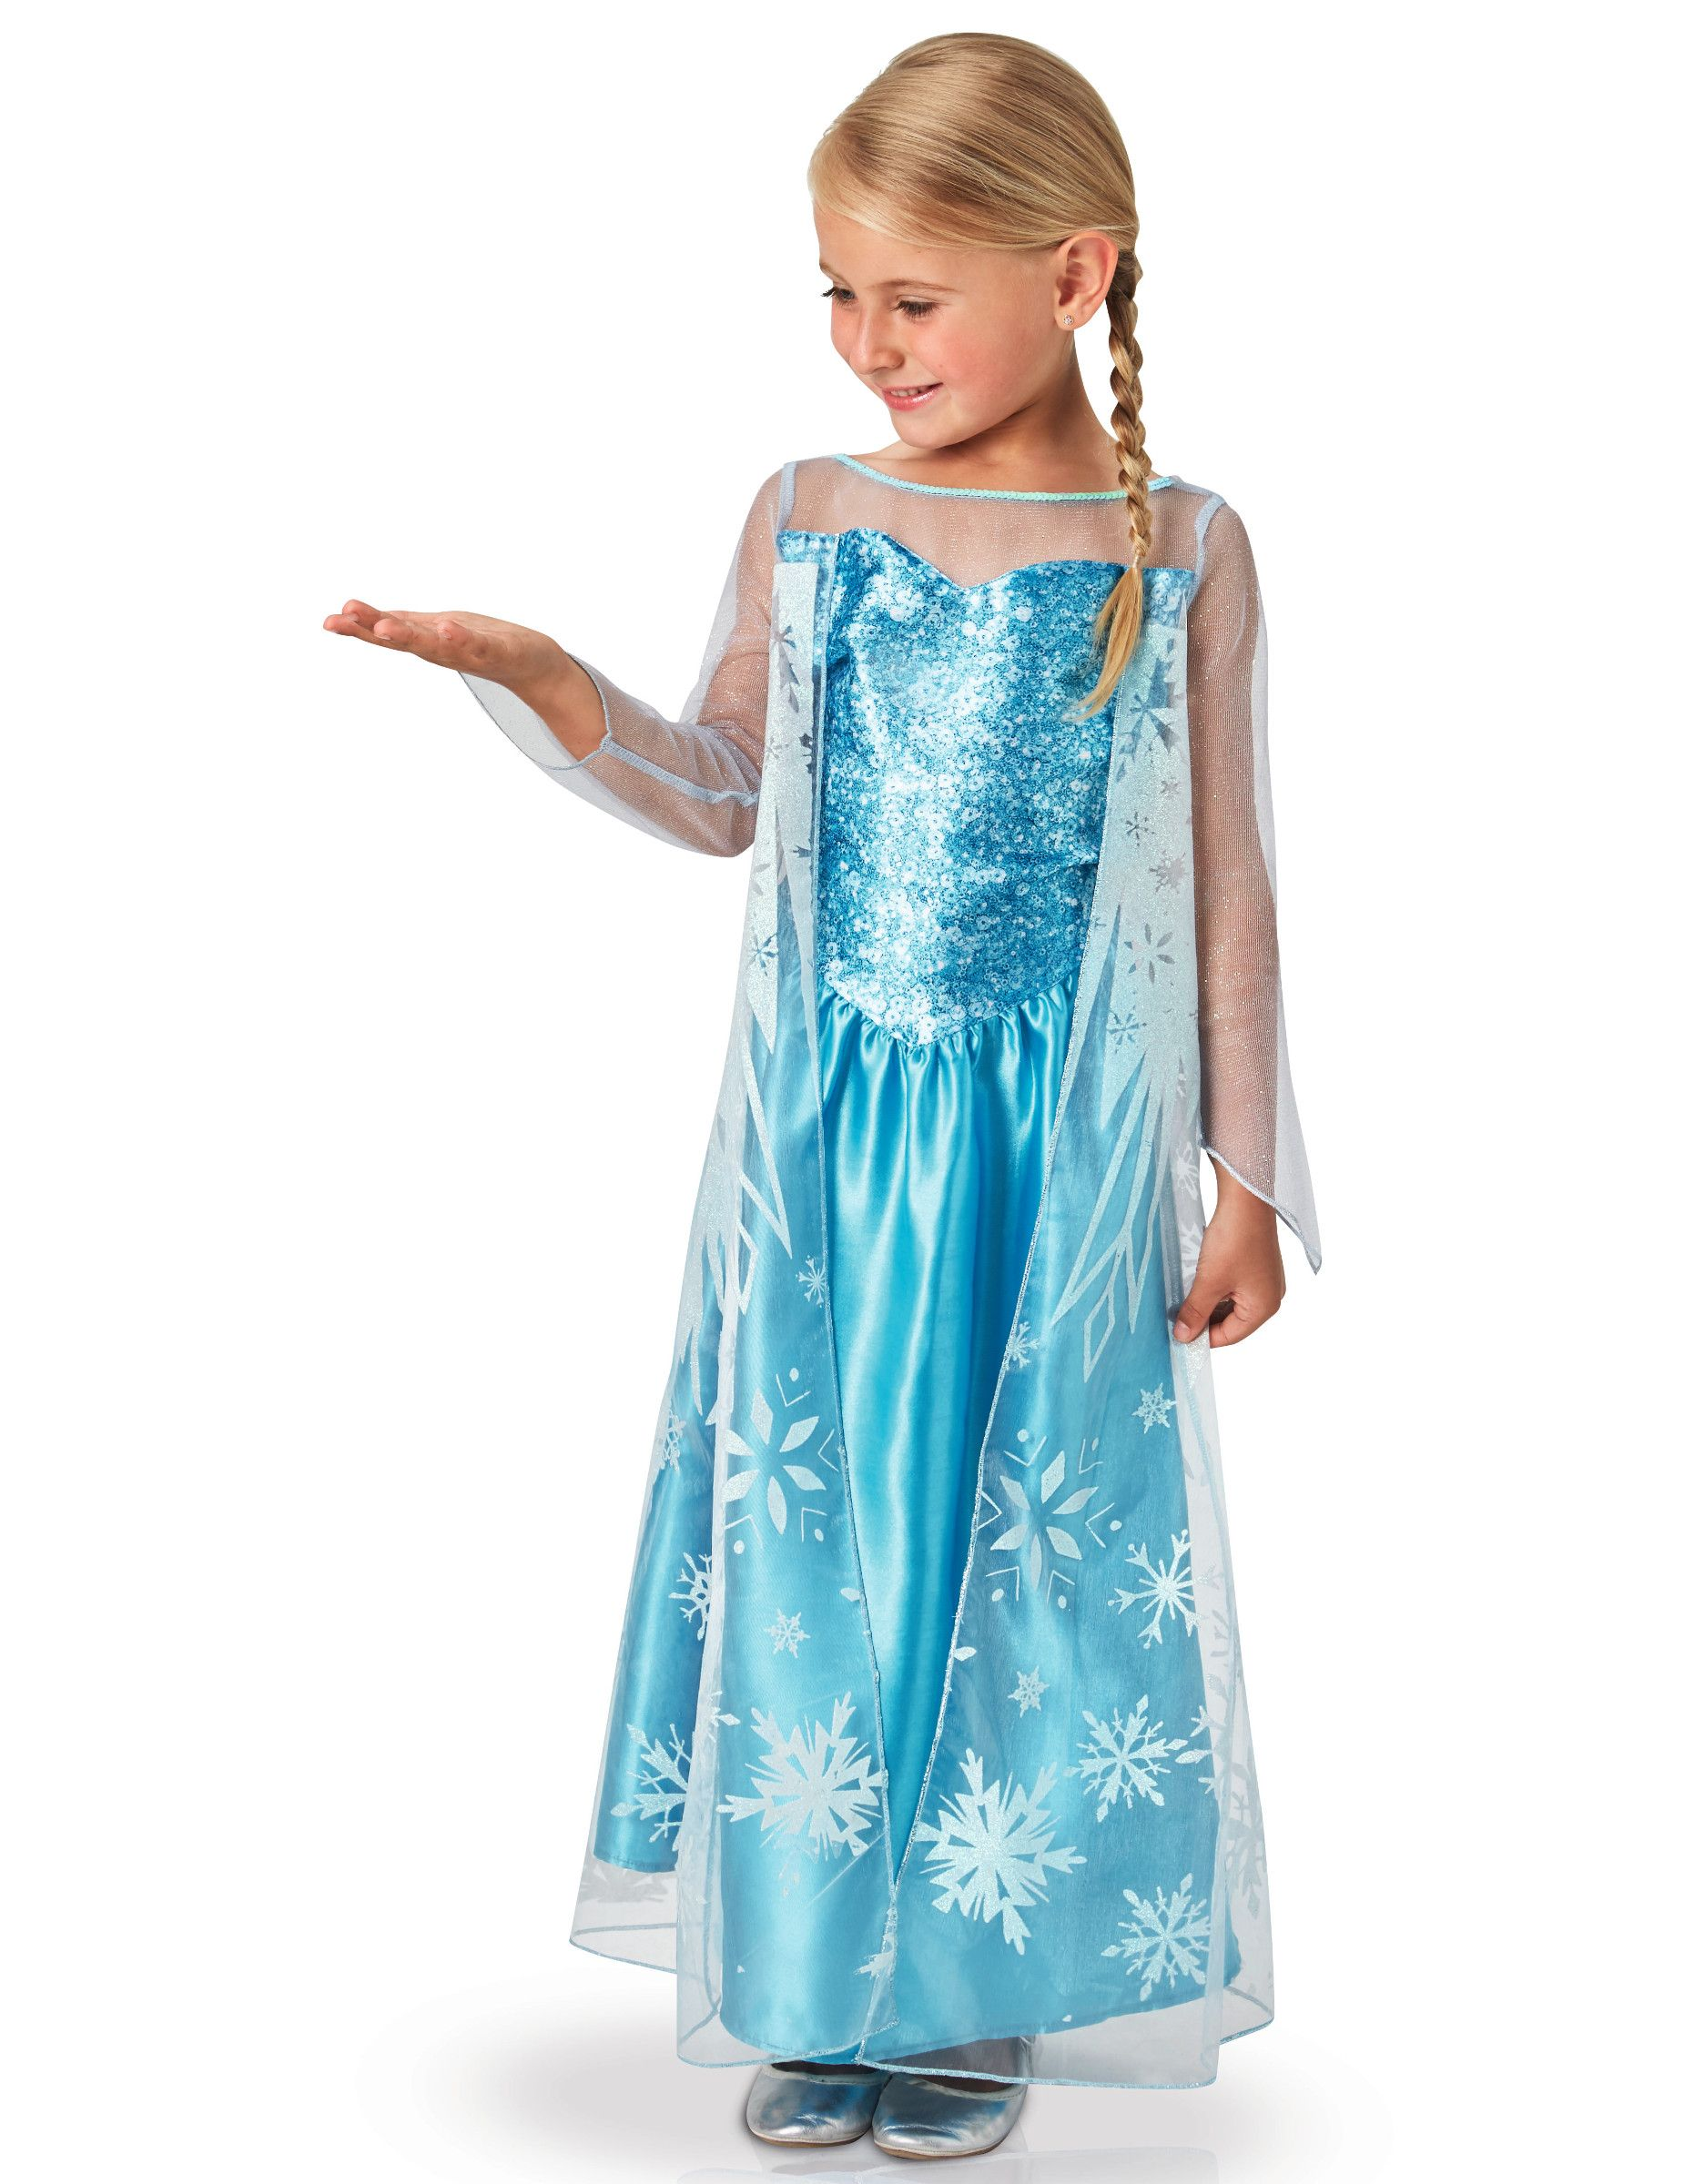 Classic Elsa Frozen™ outfit for girls  916e5aa6478